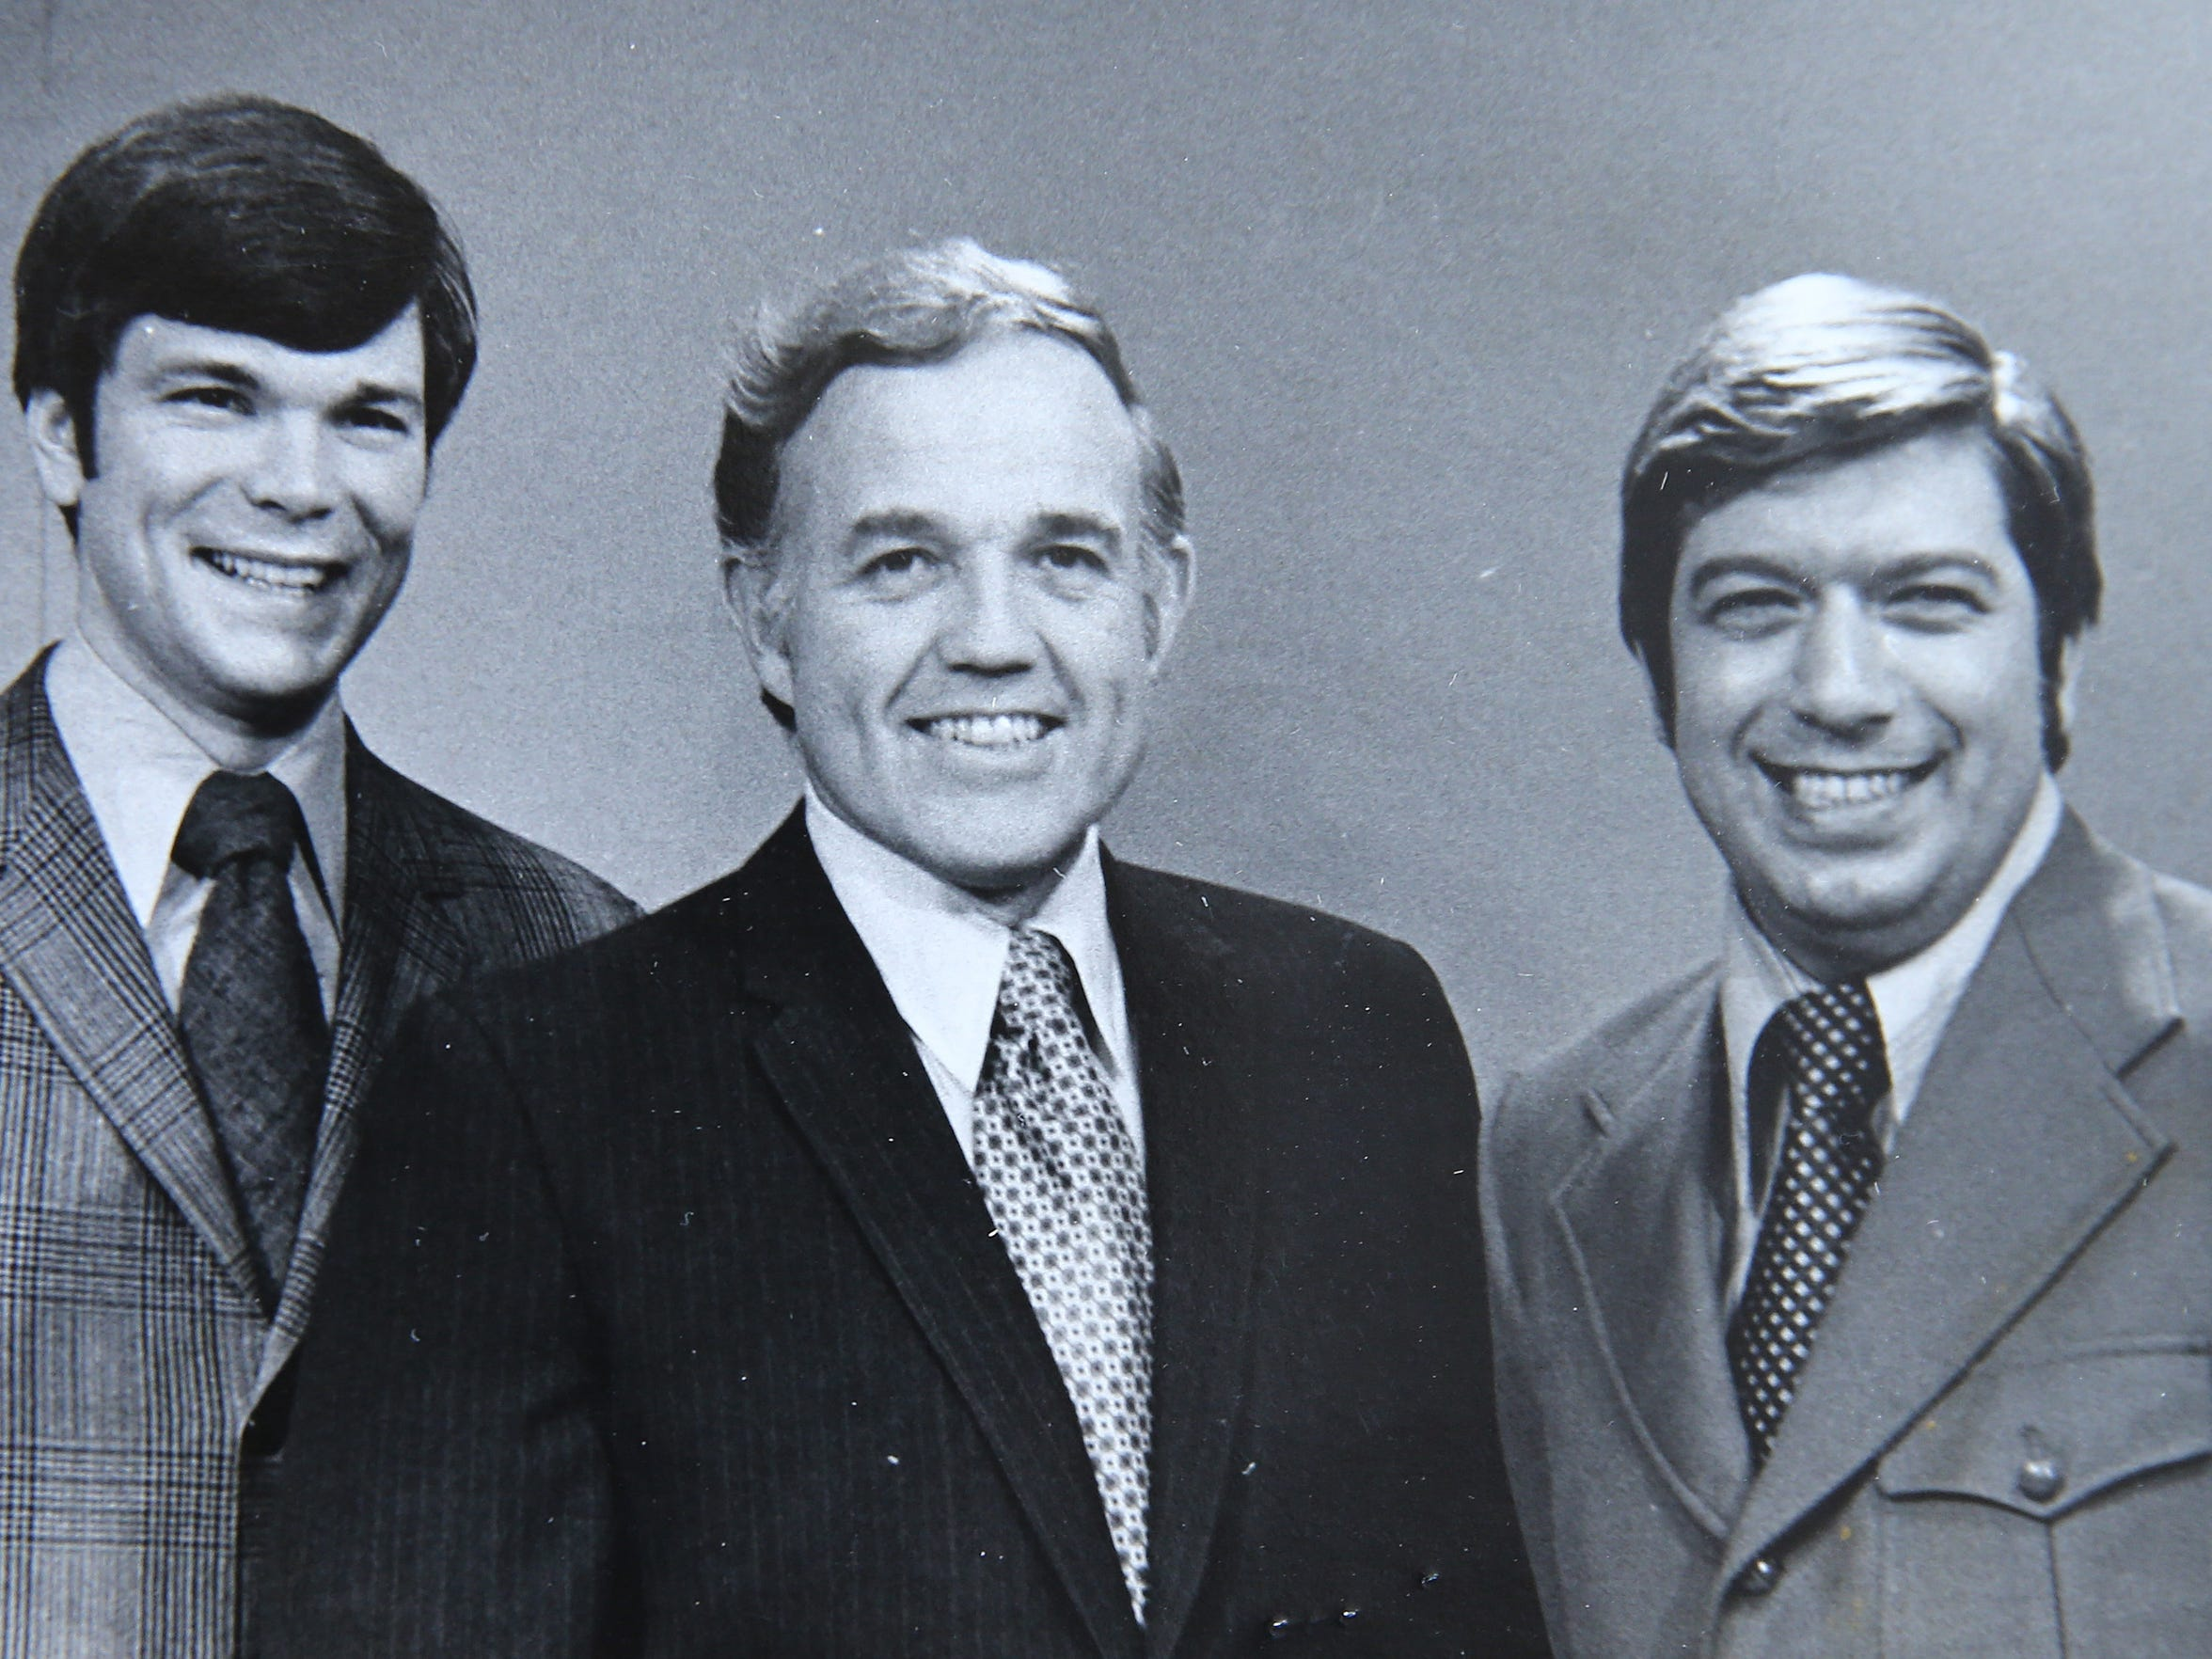 From left to right, Don Alhart with former Channel 13 colleagues, Dick Burt and Ron DeFrance.